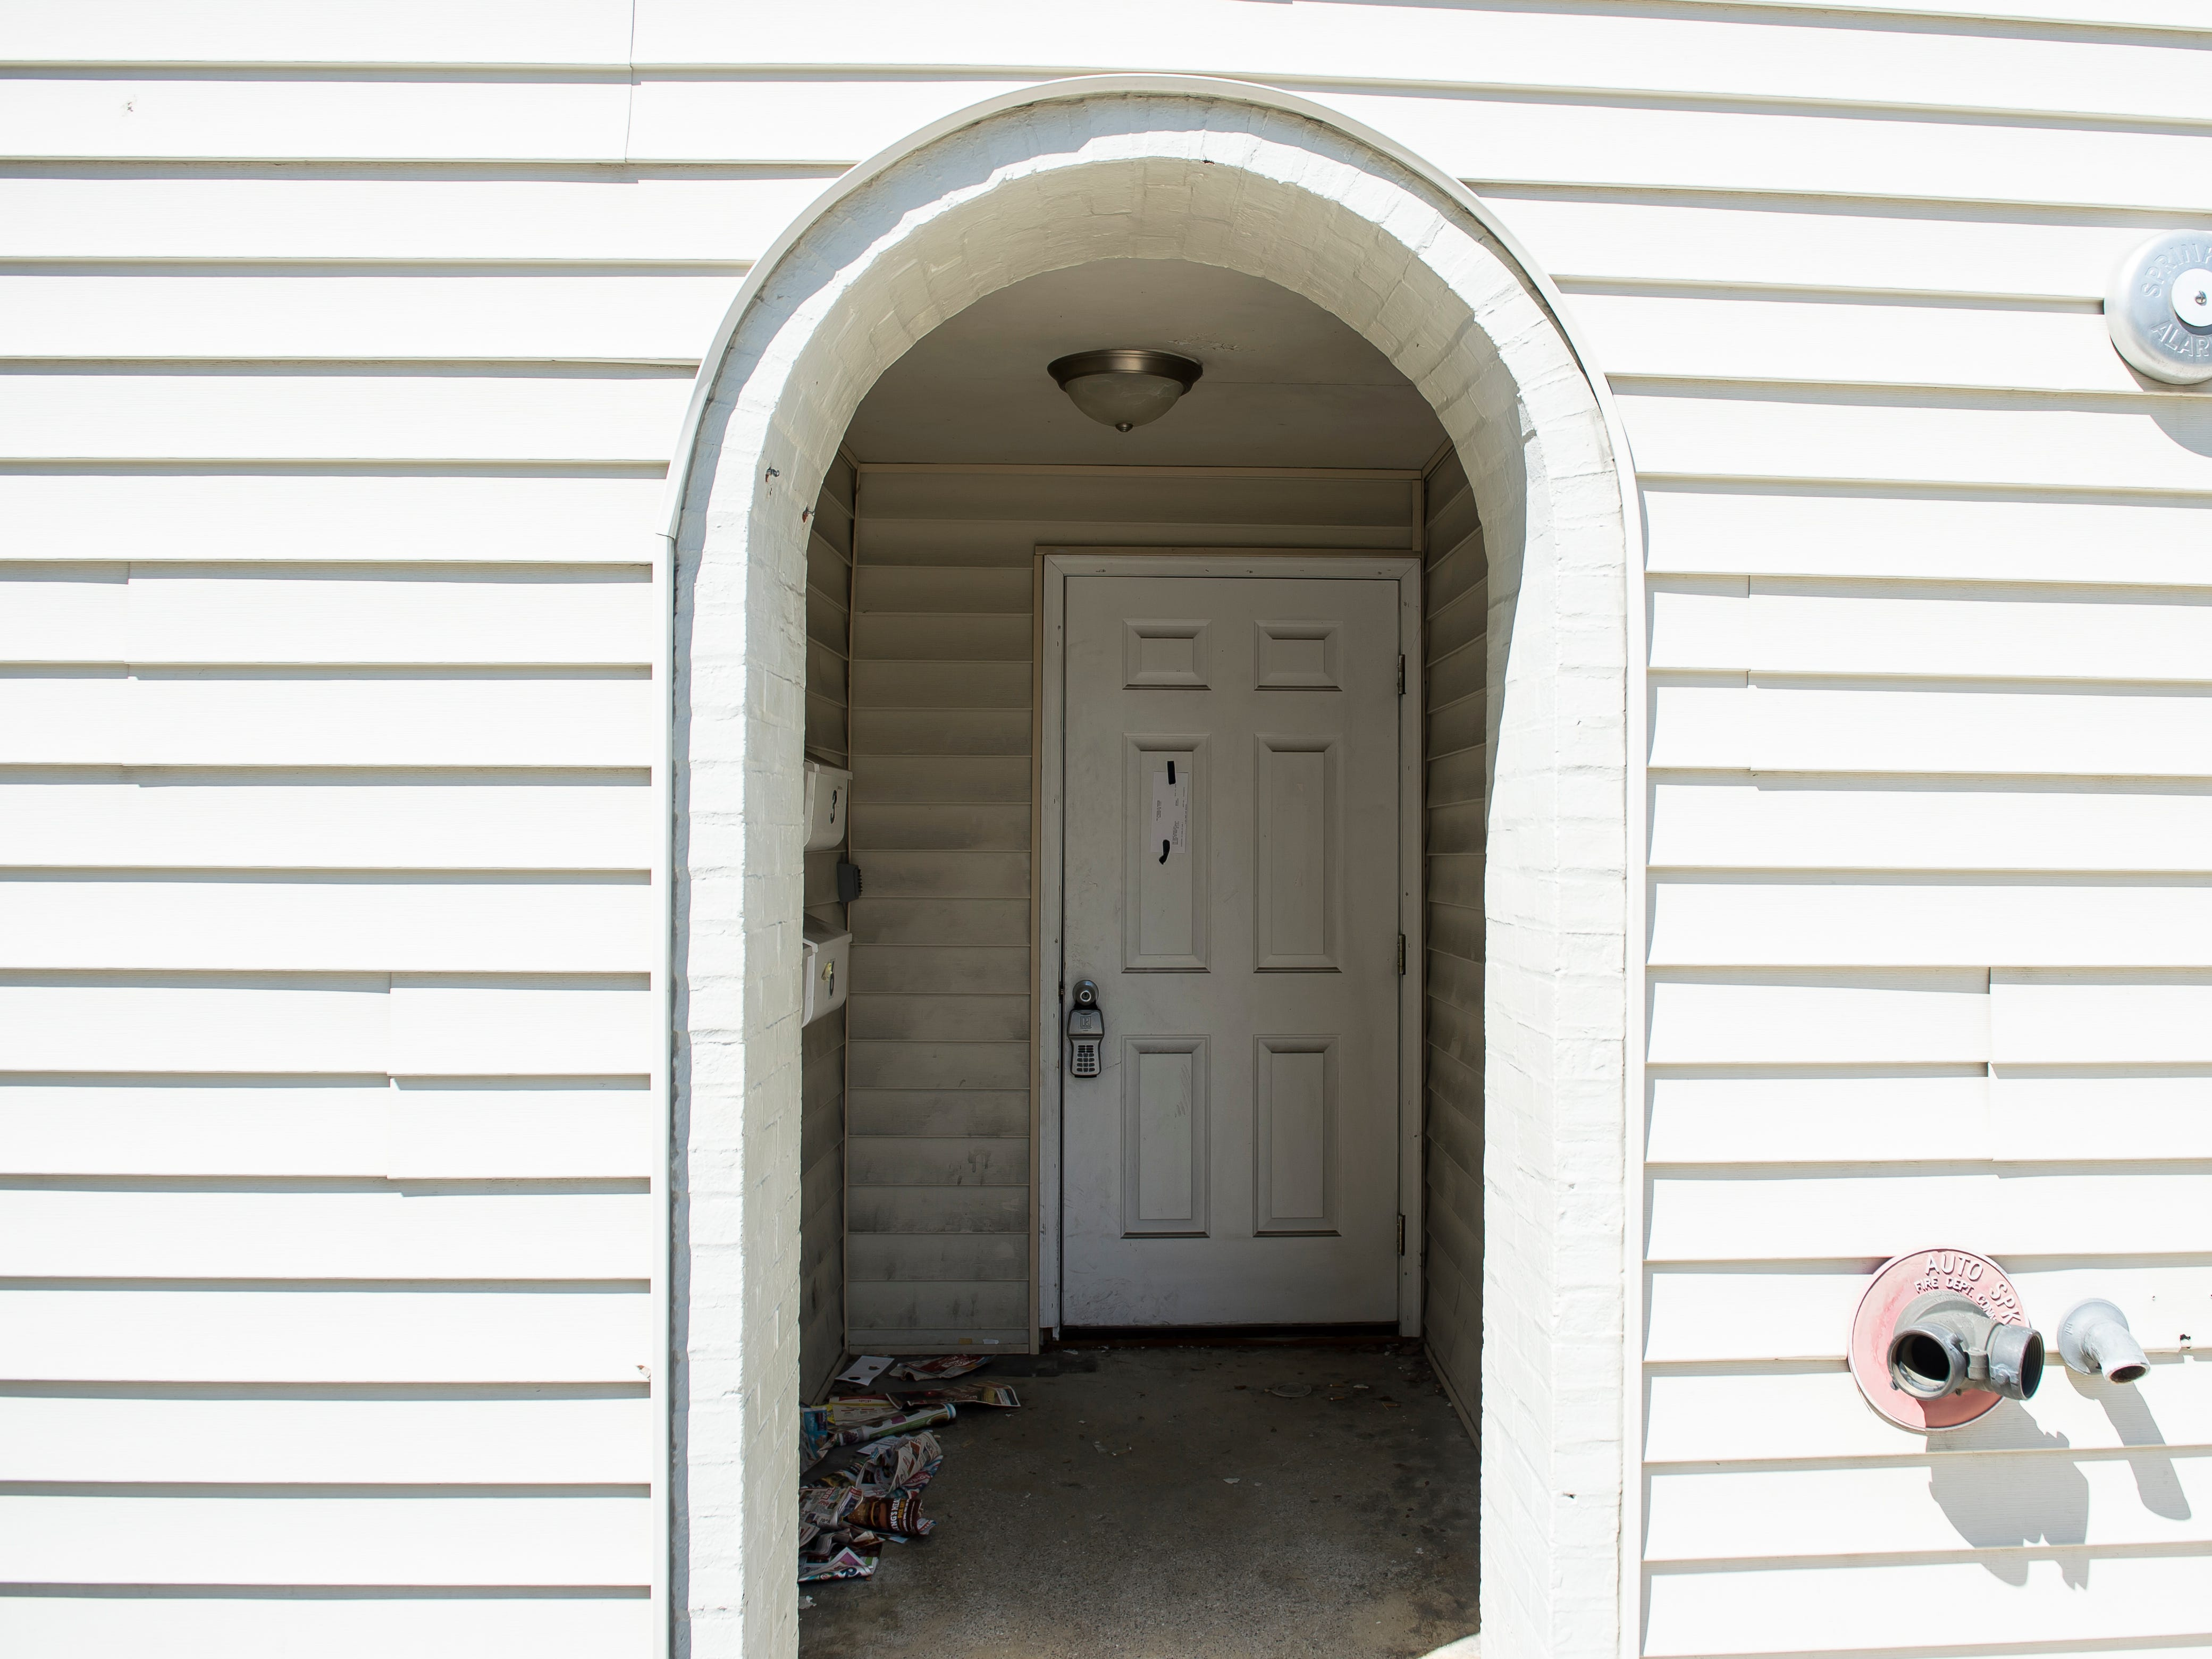 A baby girl's body was found concealed in a chest inside a home in the first block of York Street in 1801.